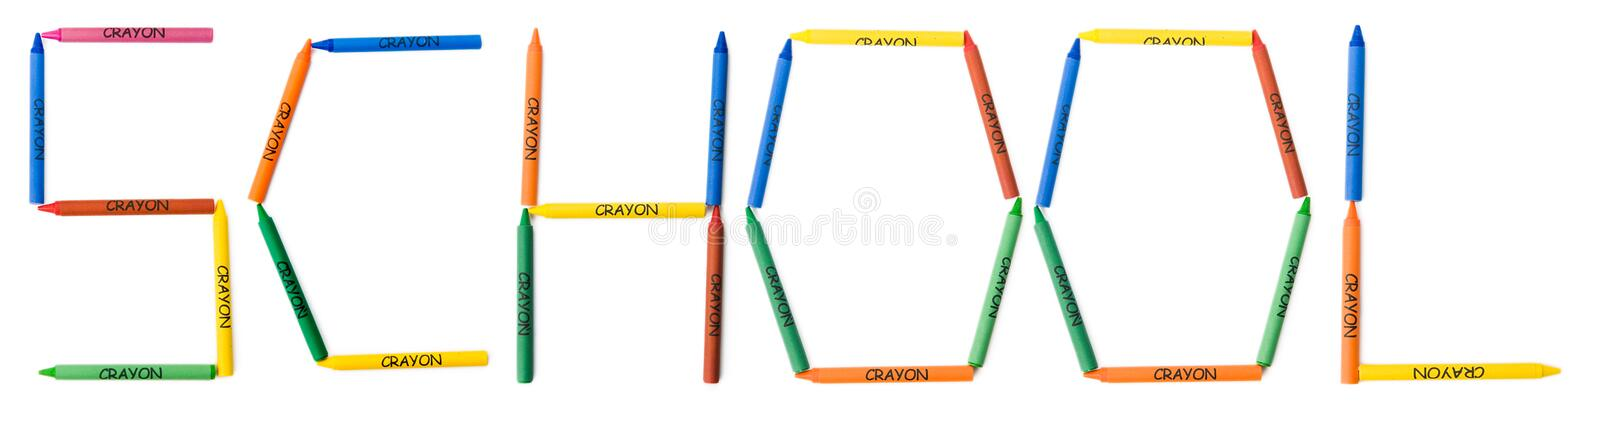 Colored Crayons Spelling School stock photo